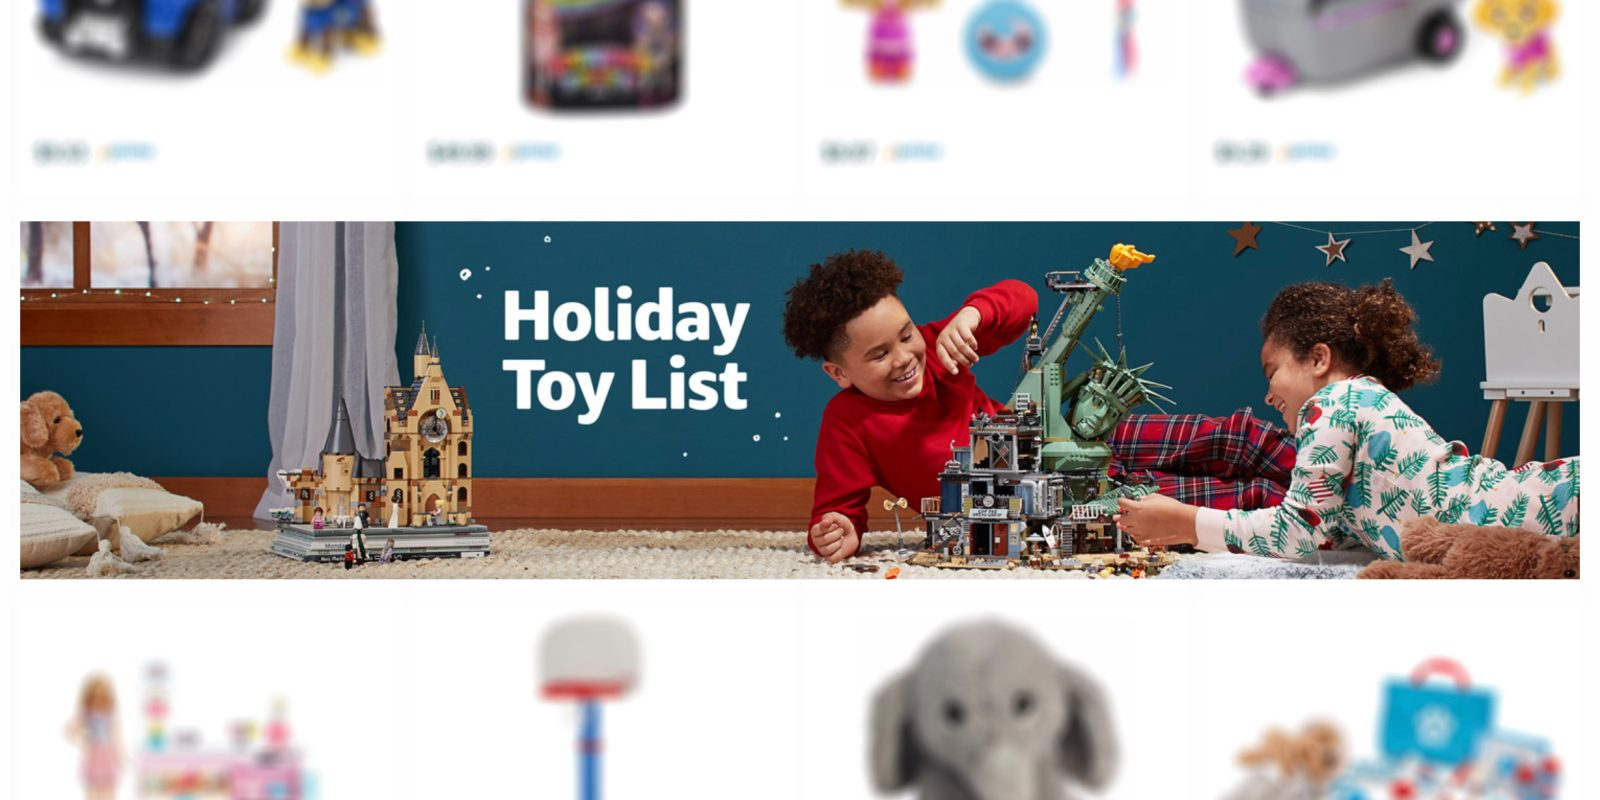 Amazon Toys List for 2019 details the top 100 gifts, more